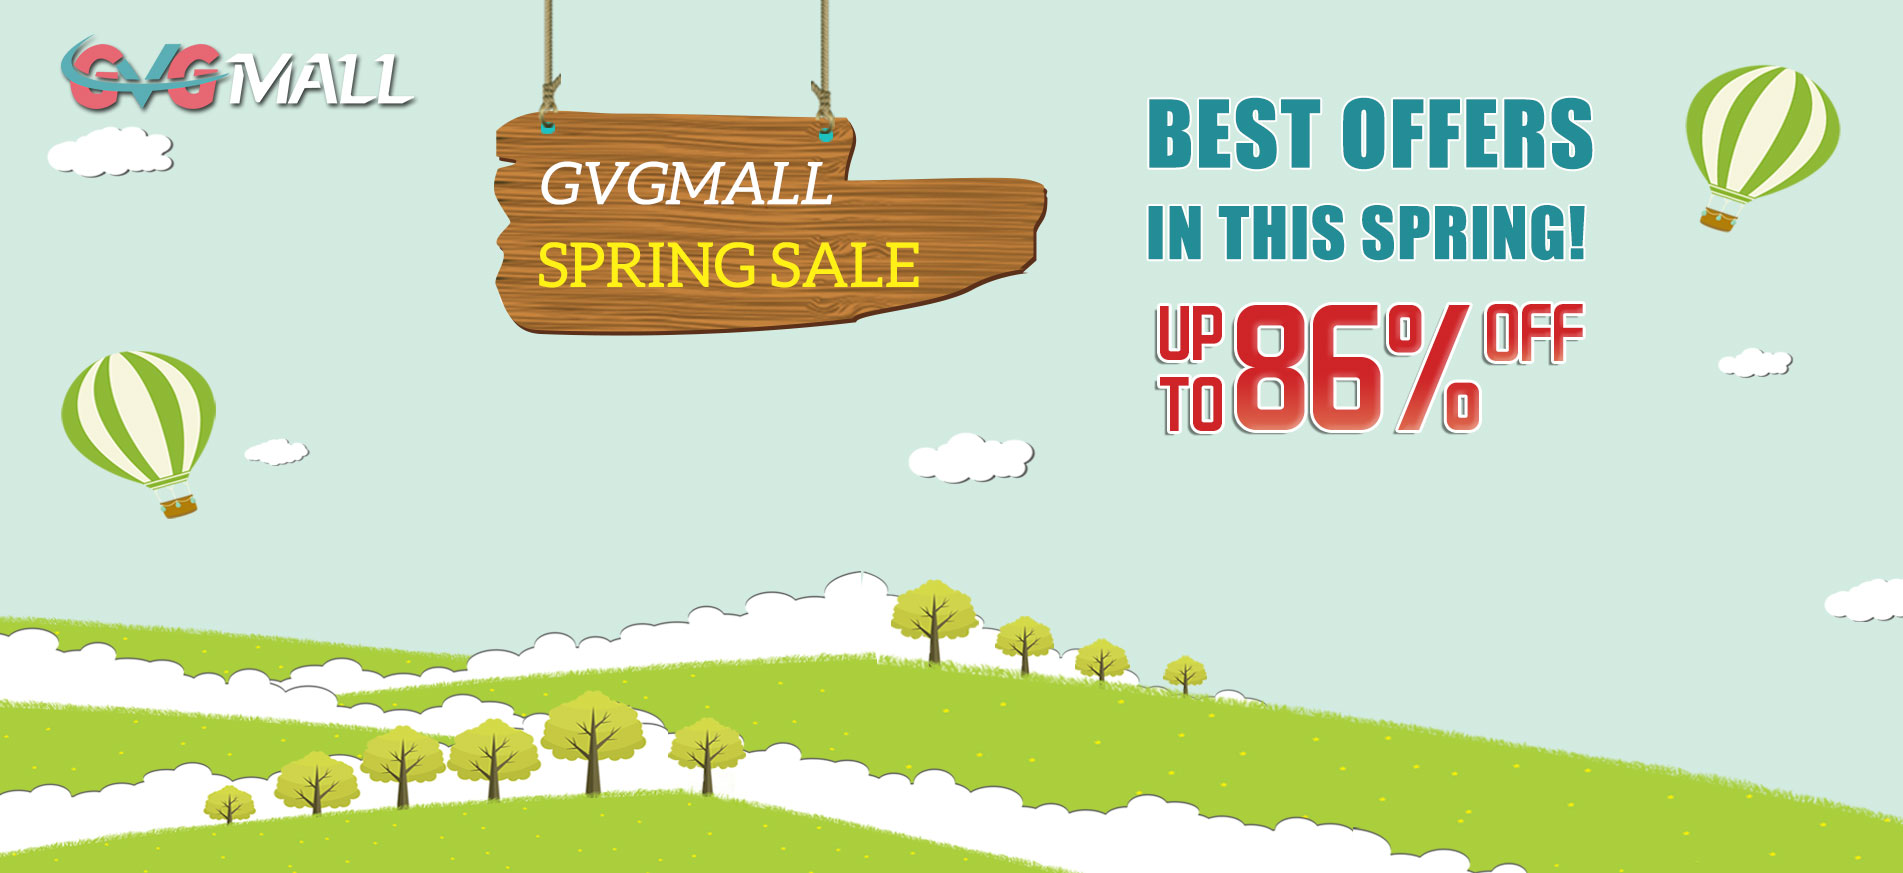 GVGMALL Spring Sale